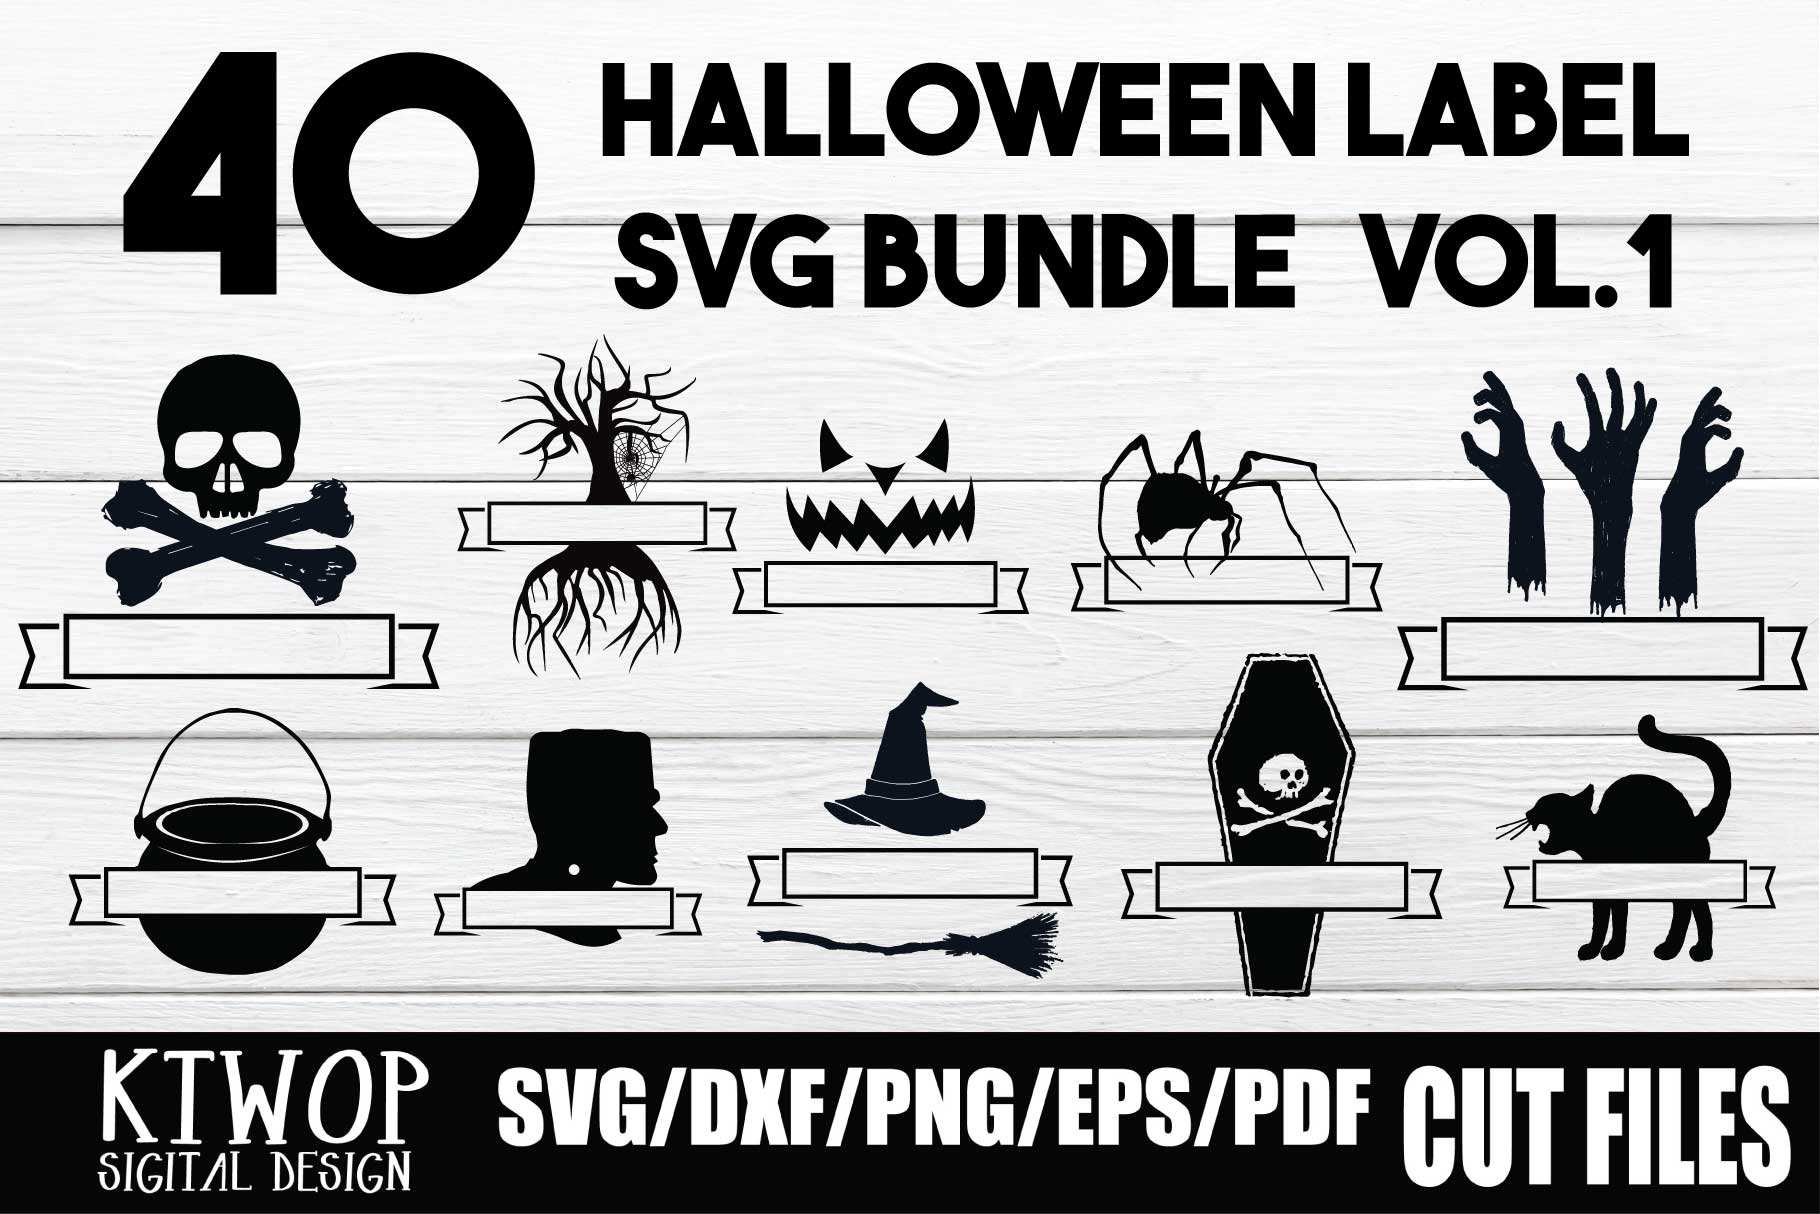 Halloween Free Svg Images Free Svg Cut Files Create Your Diy Projects Using Your Cricut Explore Silhouette And More The Free Cut Files Include Svg Dxf Eps And Png Files